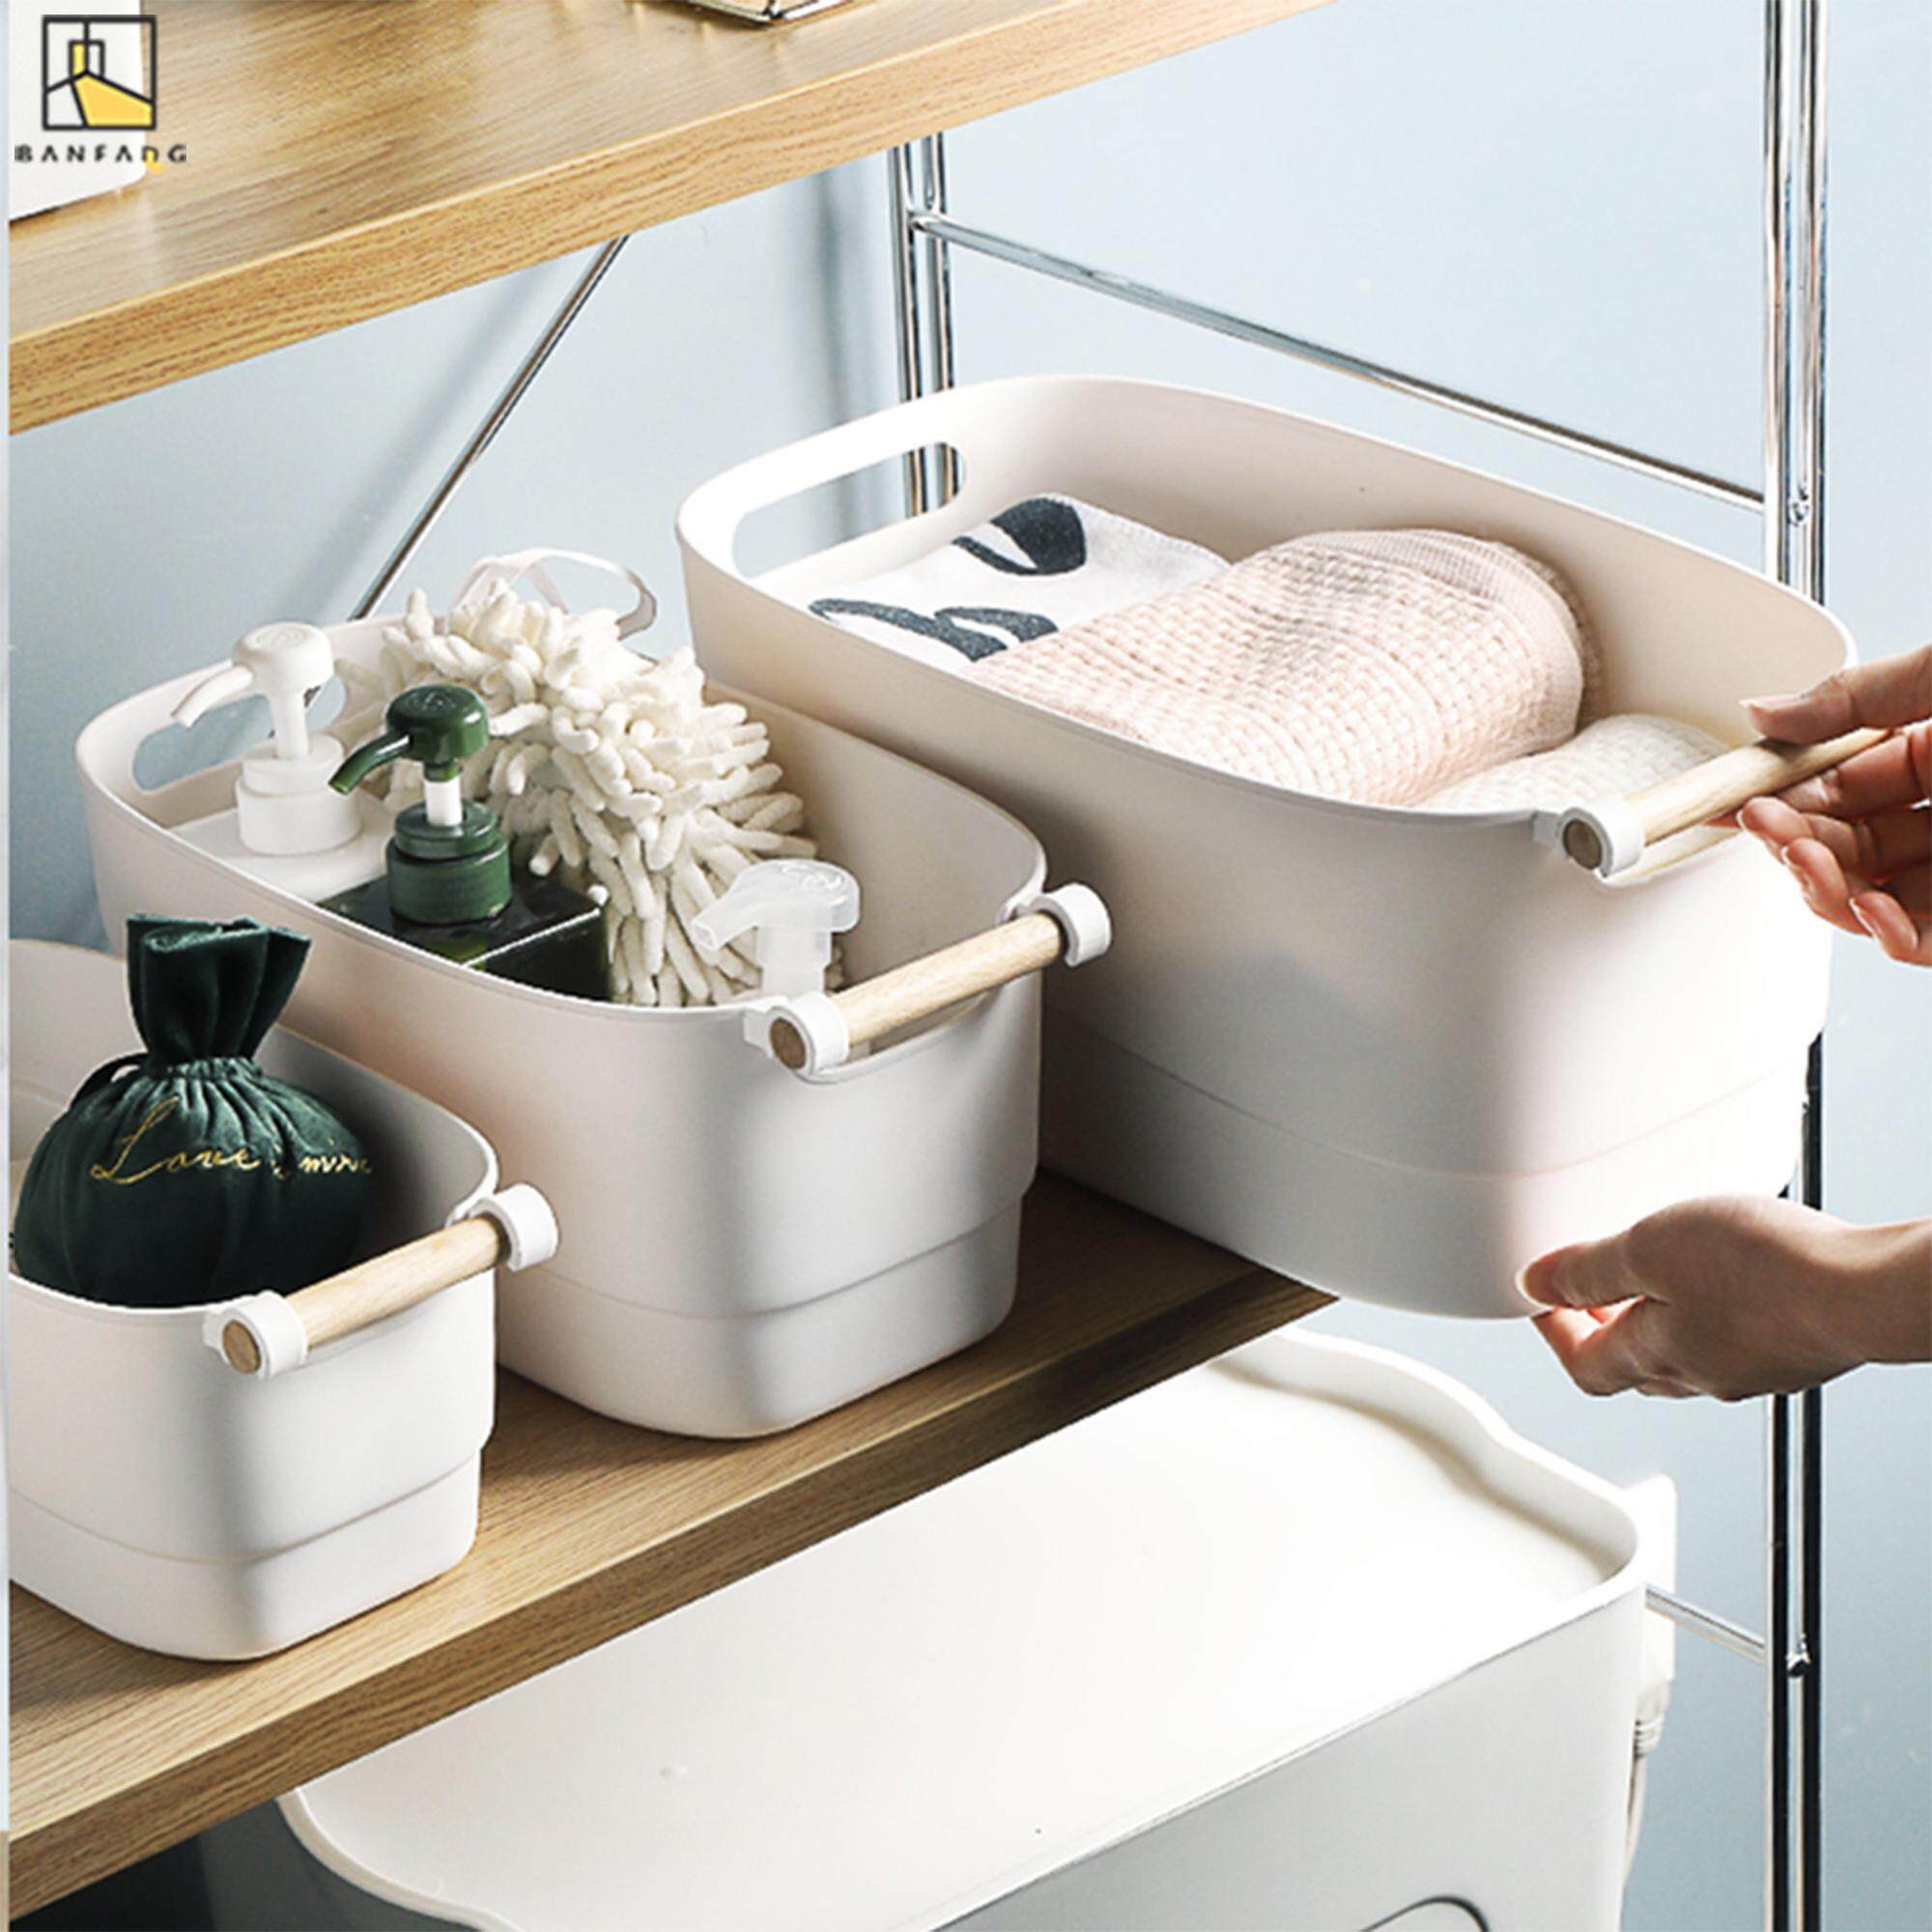 BANFANG Plastic storage basket with handle, white clothes in bedroom, sorting box, living room, sundries, snacks, toys, storage box